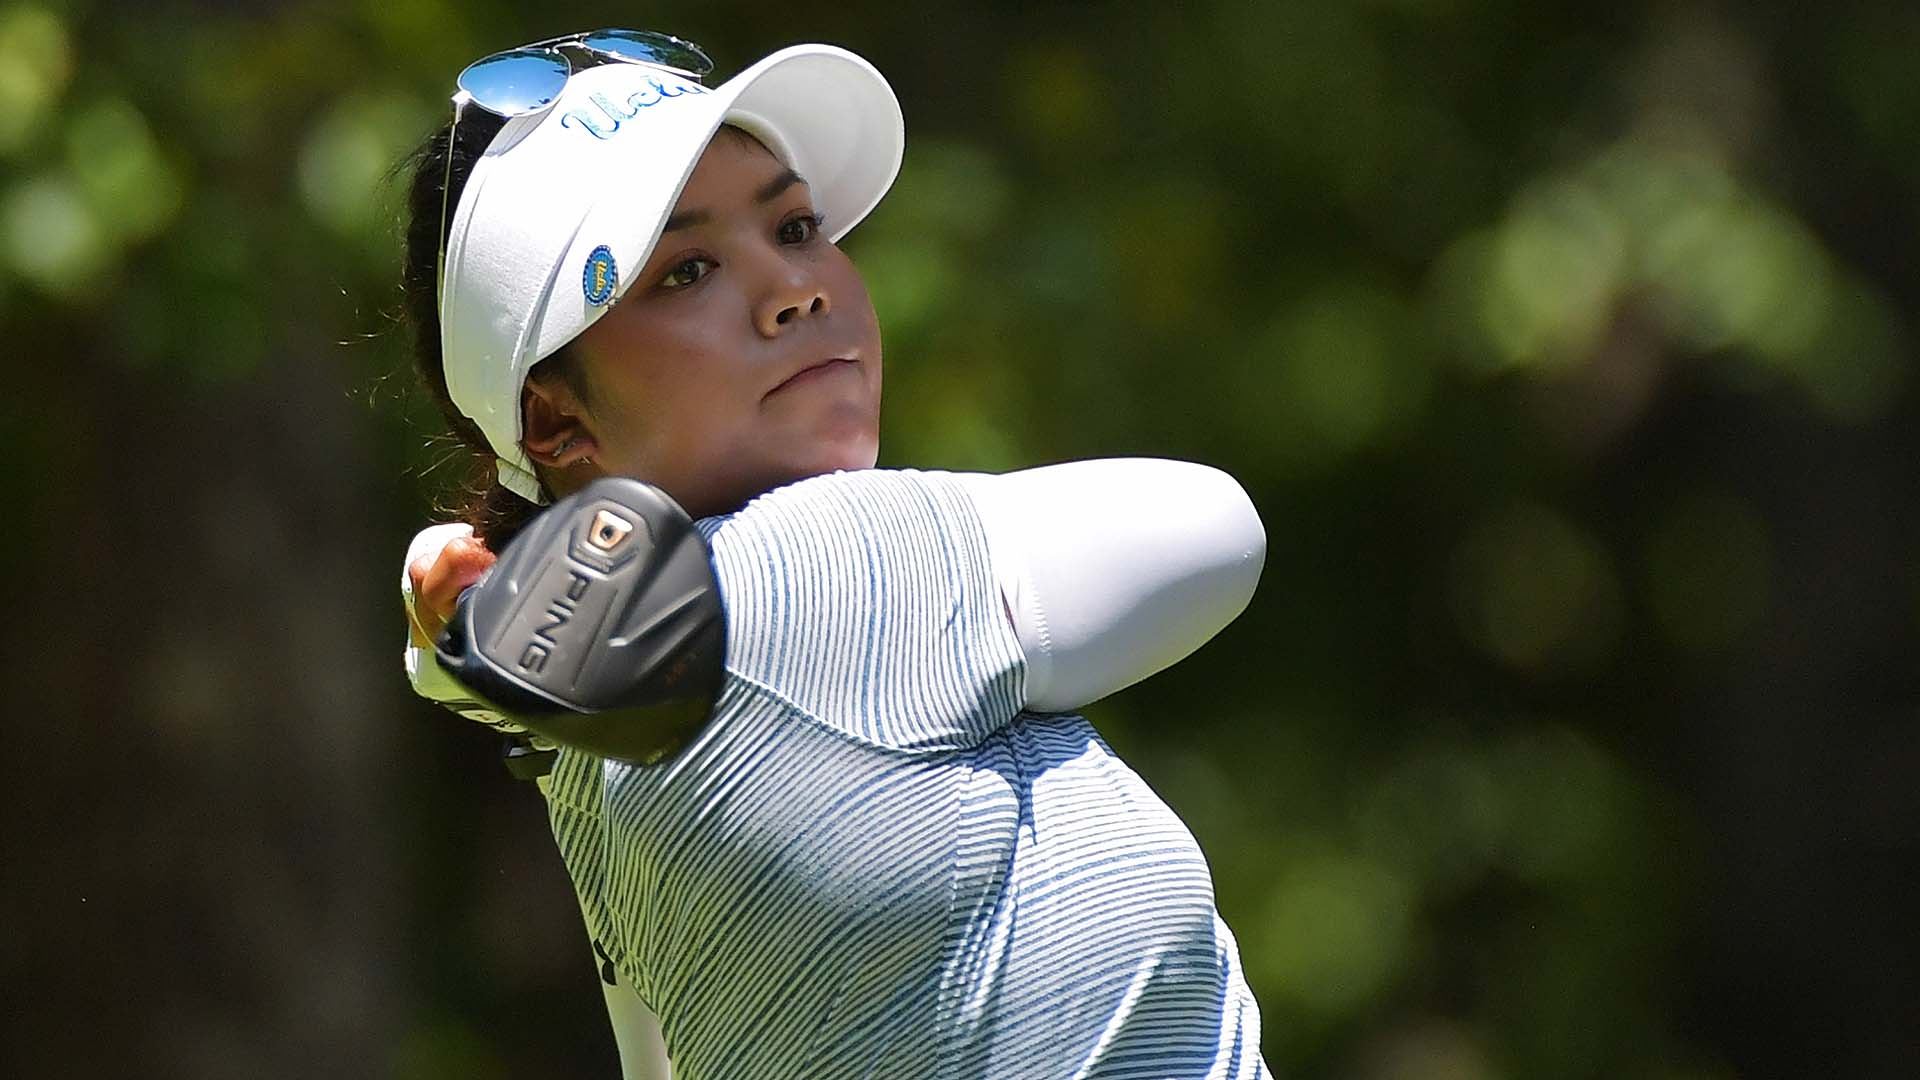 Patty Tavatanakit takes fast track - and surprising road - to the LPGA    Golf Channel